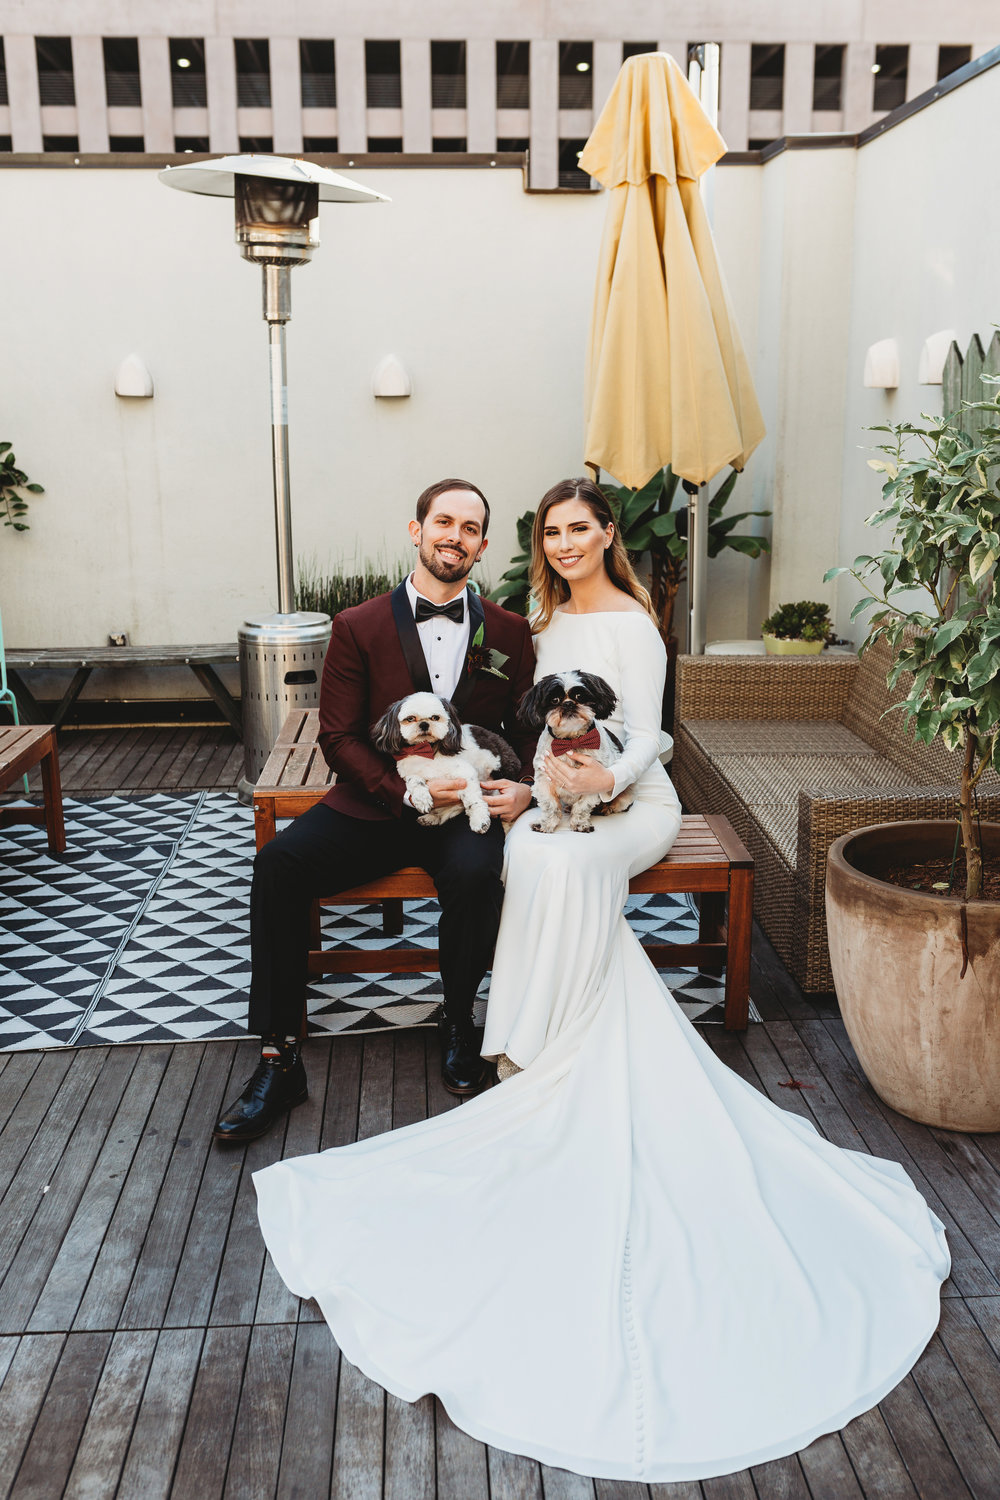 Catahoula Hotel Rooftop Wedding Ceremony New Orleans Wedding Photographer Ashley Biltz Photography6.jpg